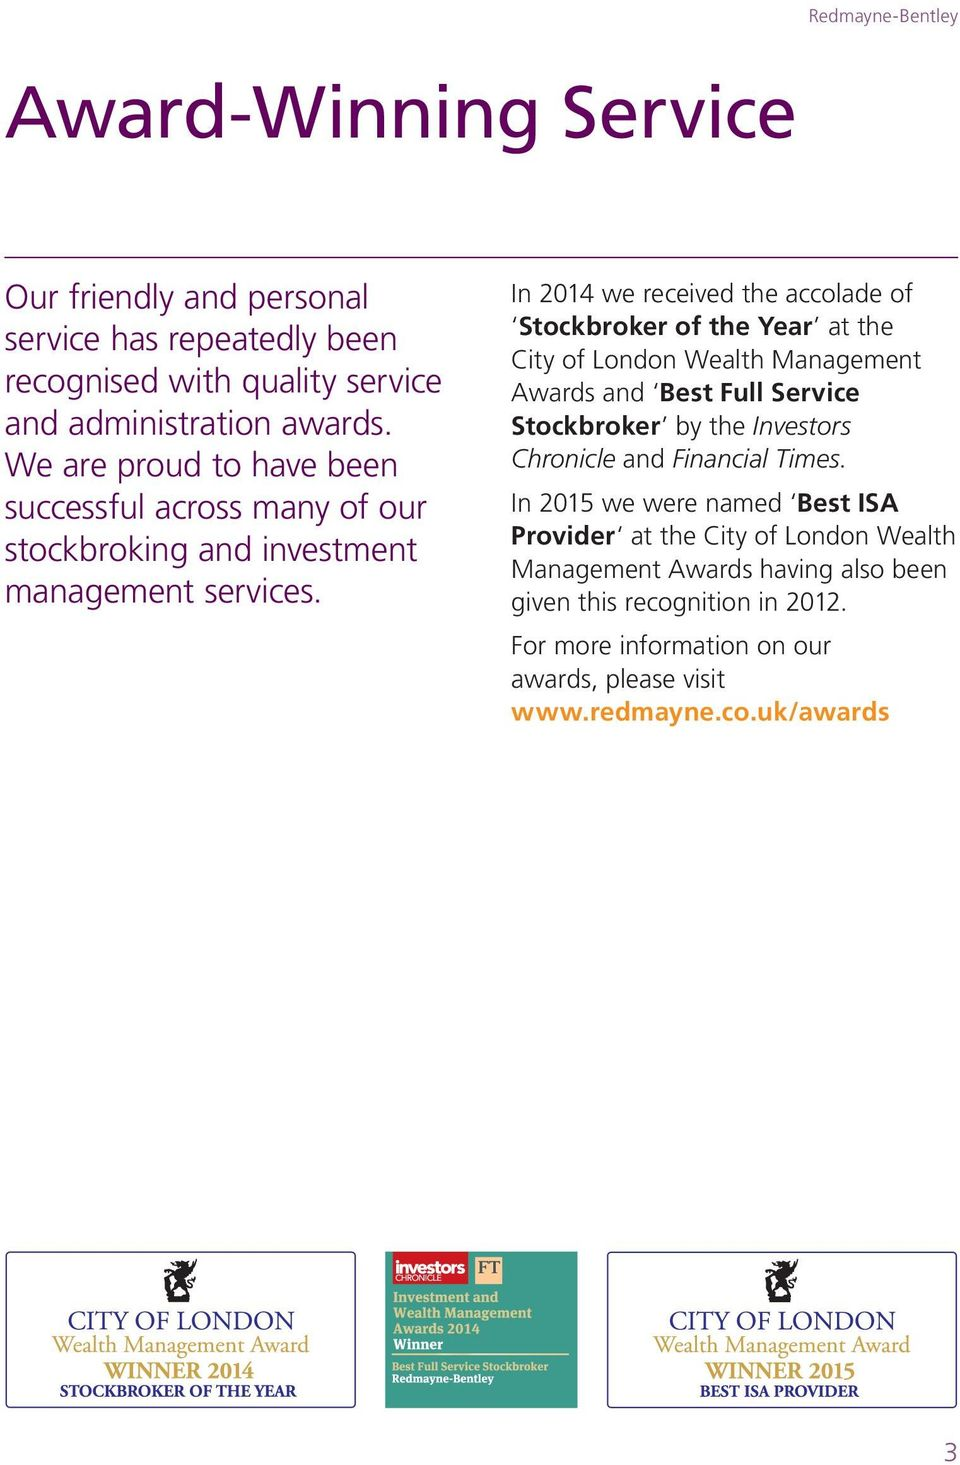 In 2014 we received the accolade of Stockbroker of the Year at the City of London Wealth Management Awards and Best Full Service Stockbroker by the Investors